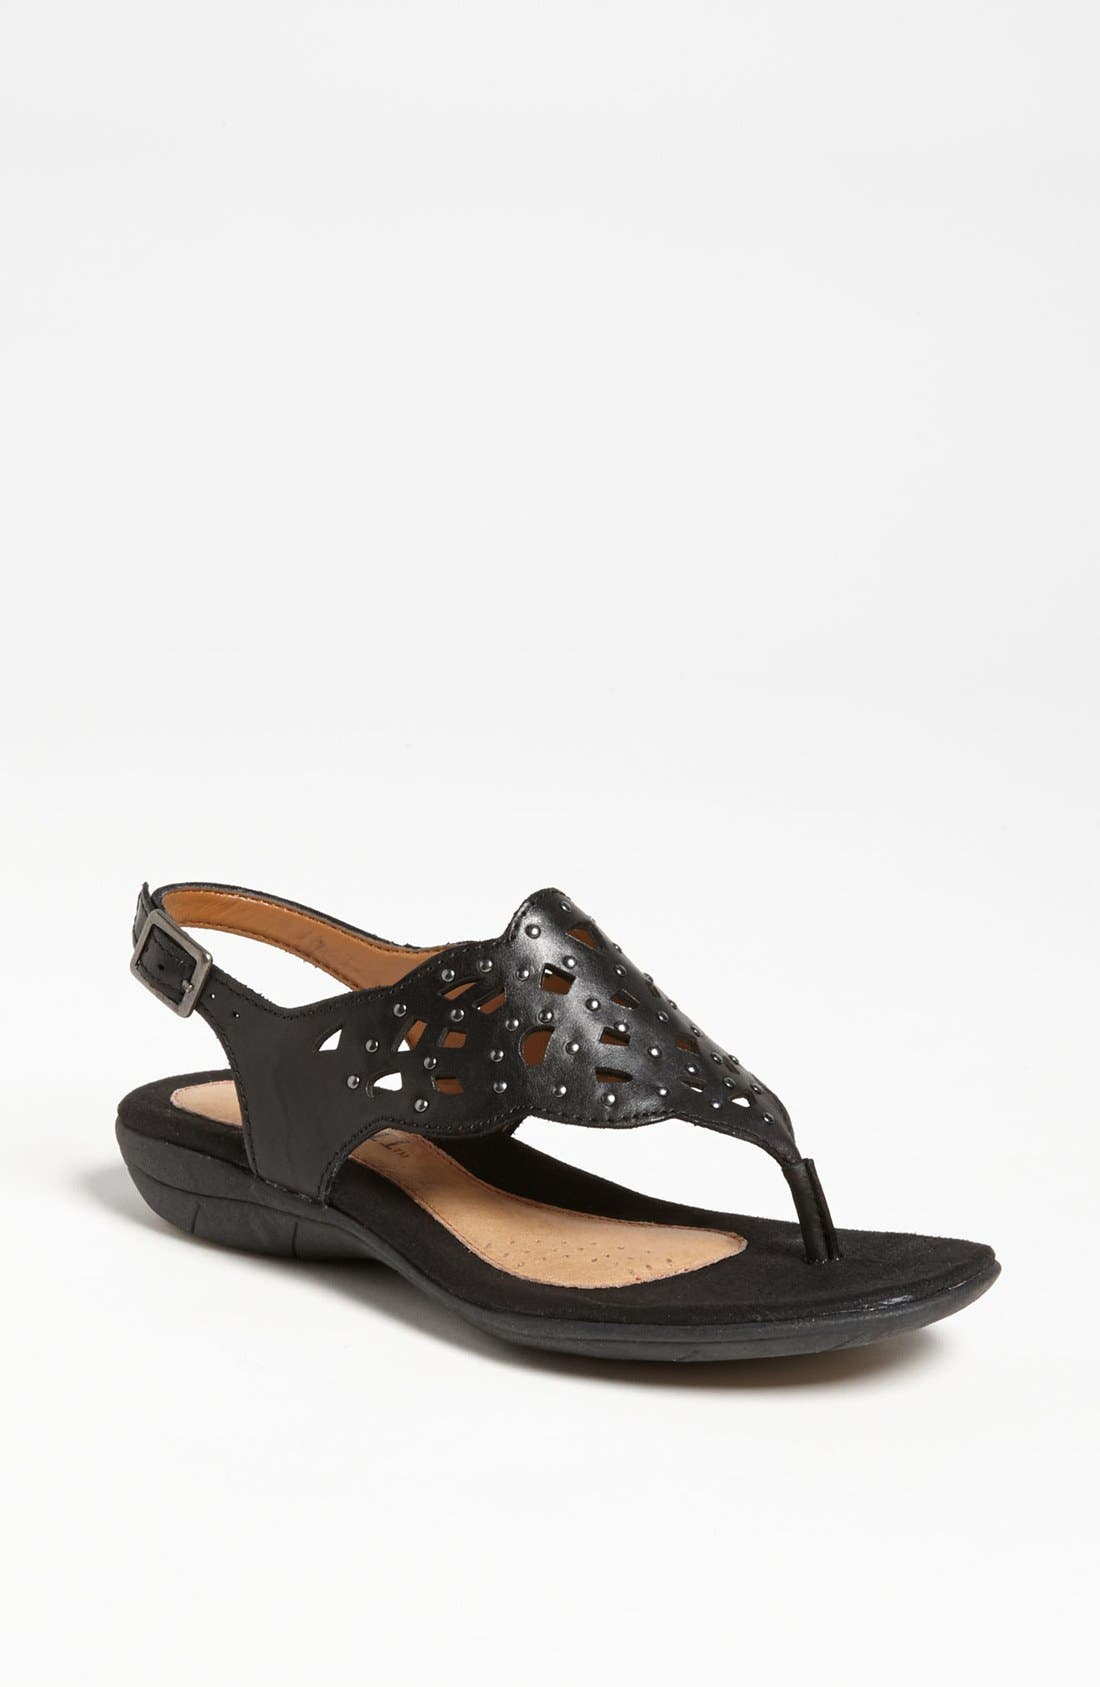 Alternate Image 1 Selected - Cobb Hill 'Willow' Sandal